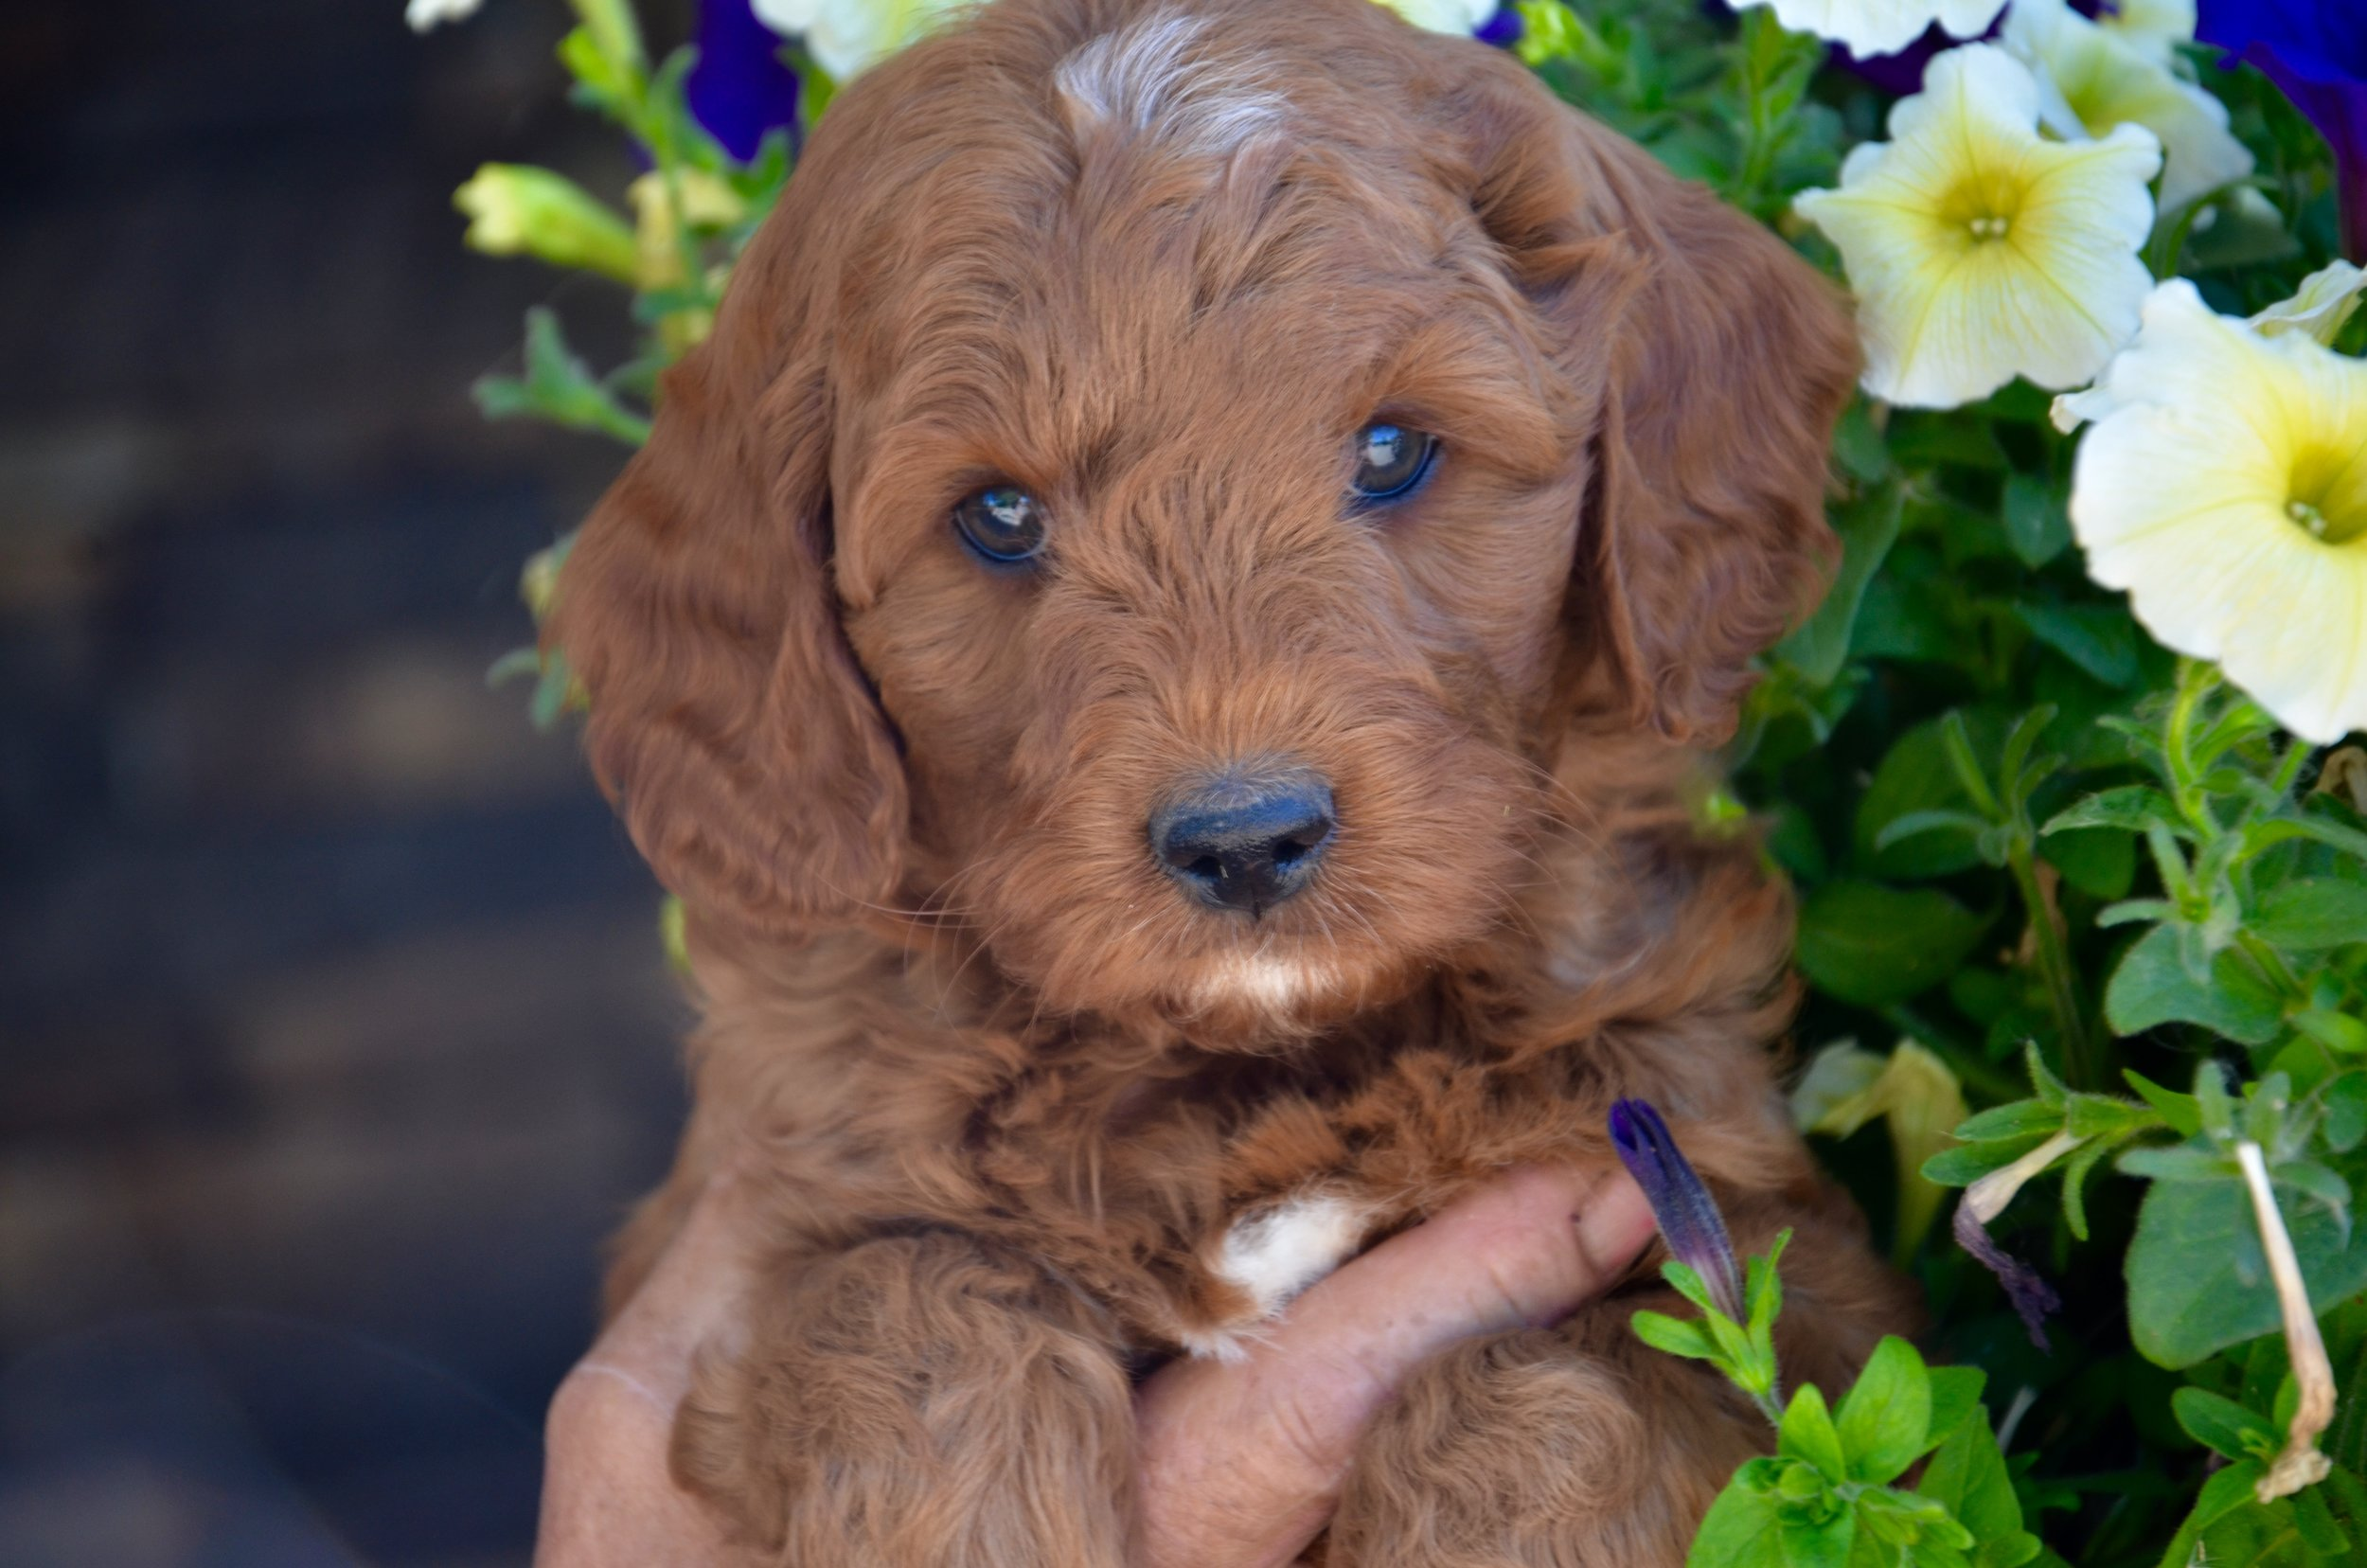 Congrats to Miss Ginger and Irene at Vander Doodles! This gal will add so much to your new breeding program!